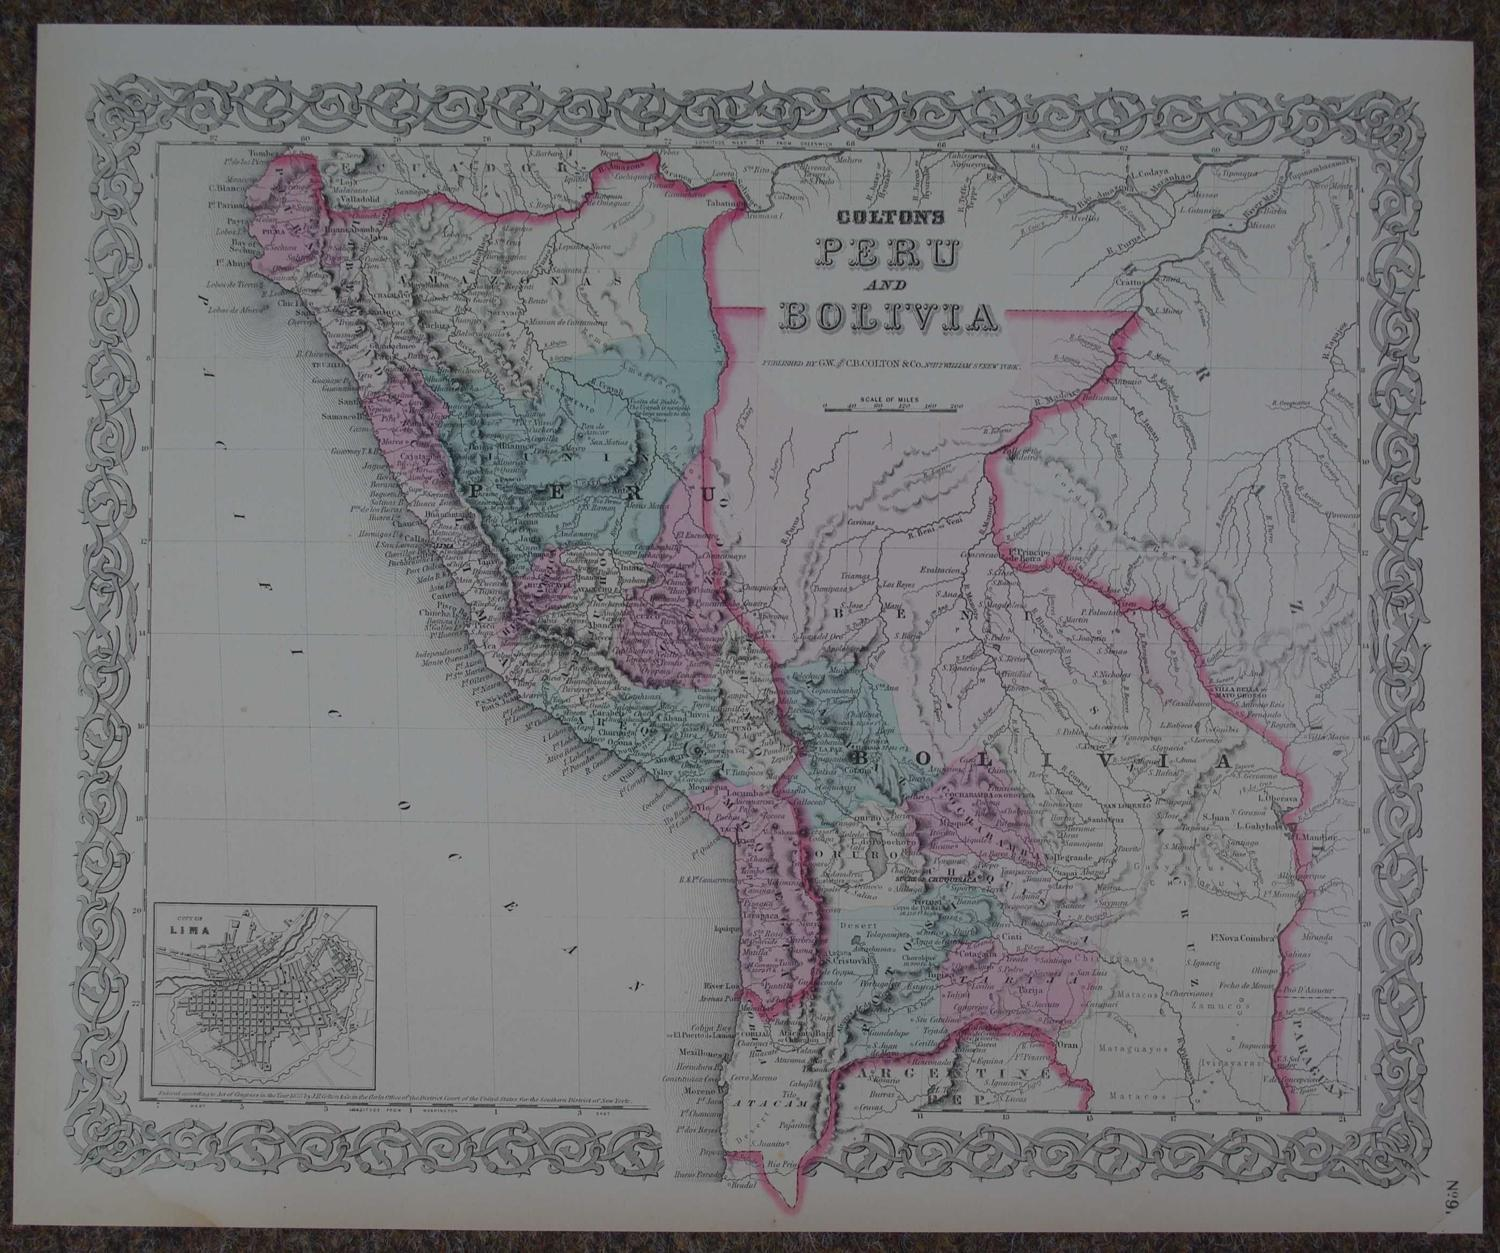 Colton's Peru and Bolivia